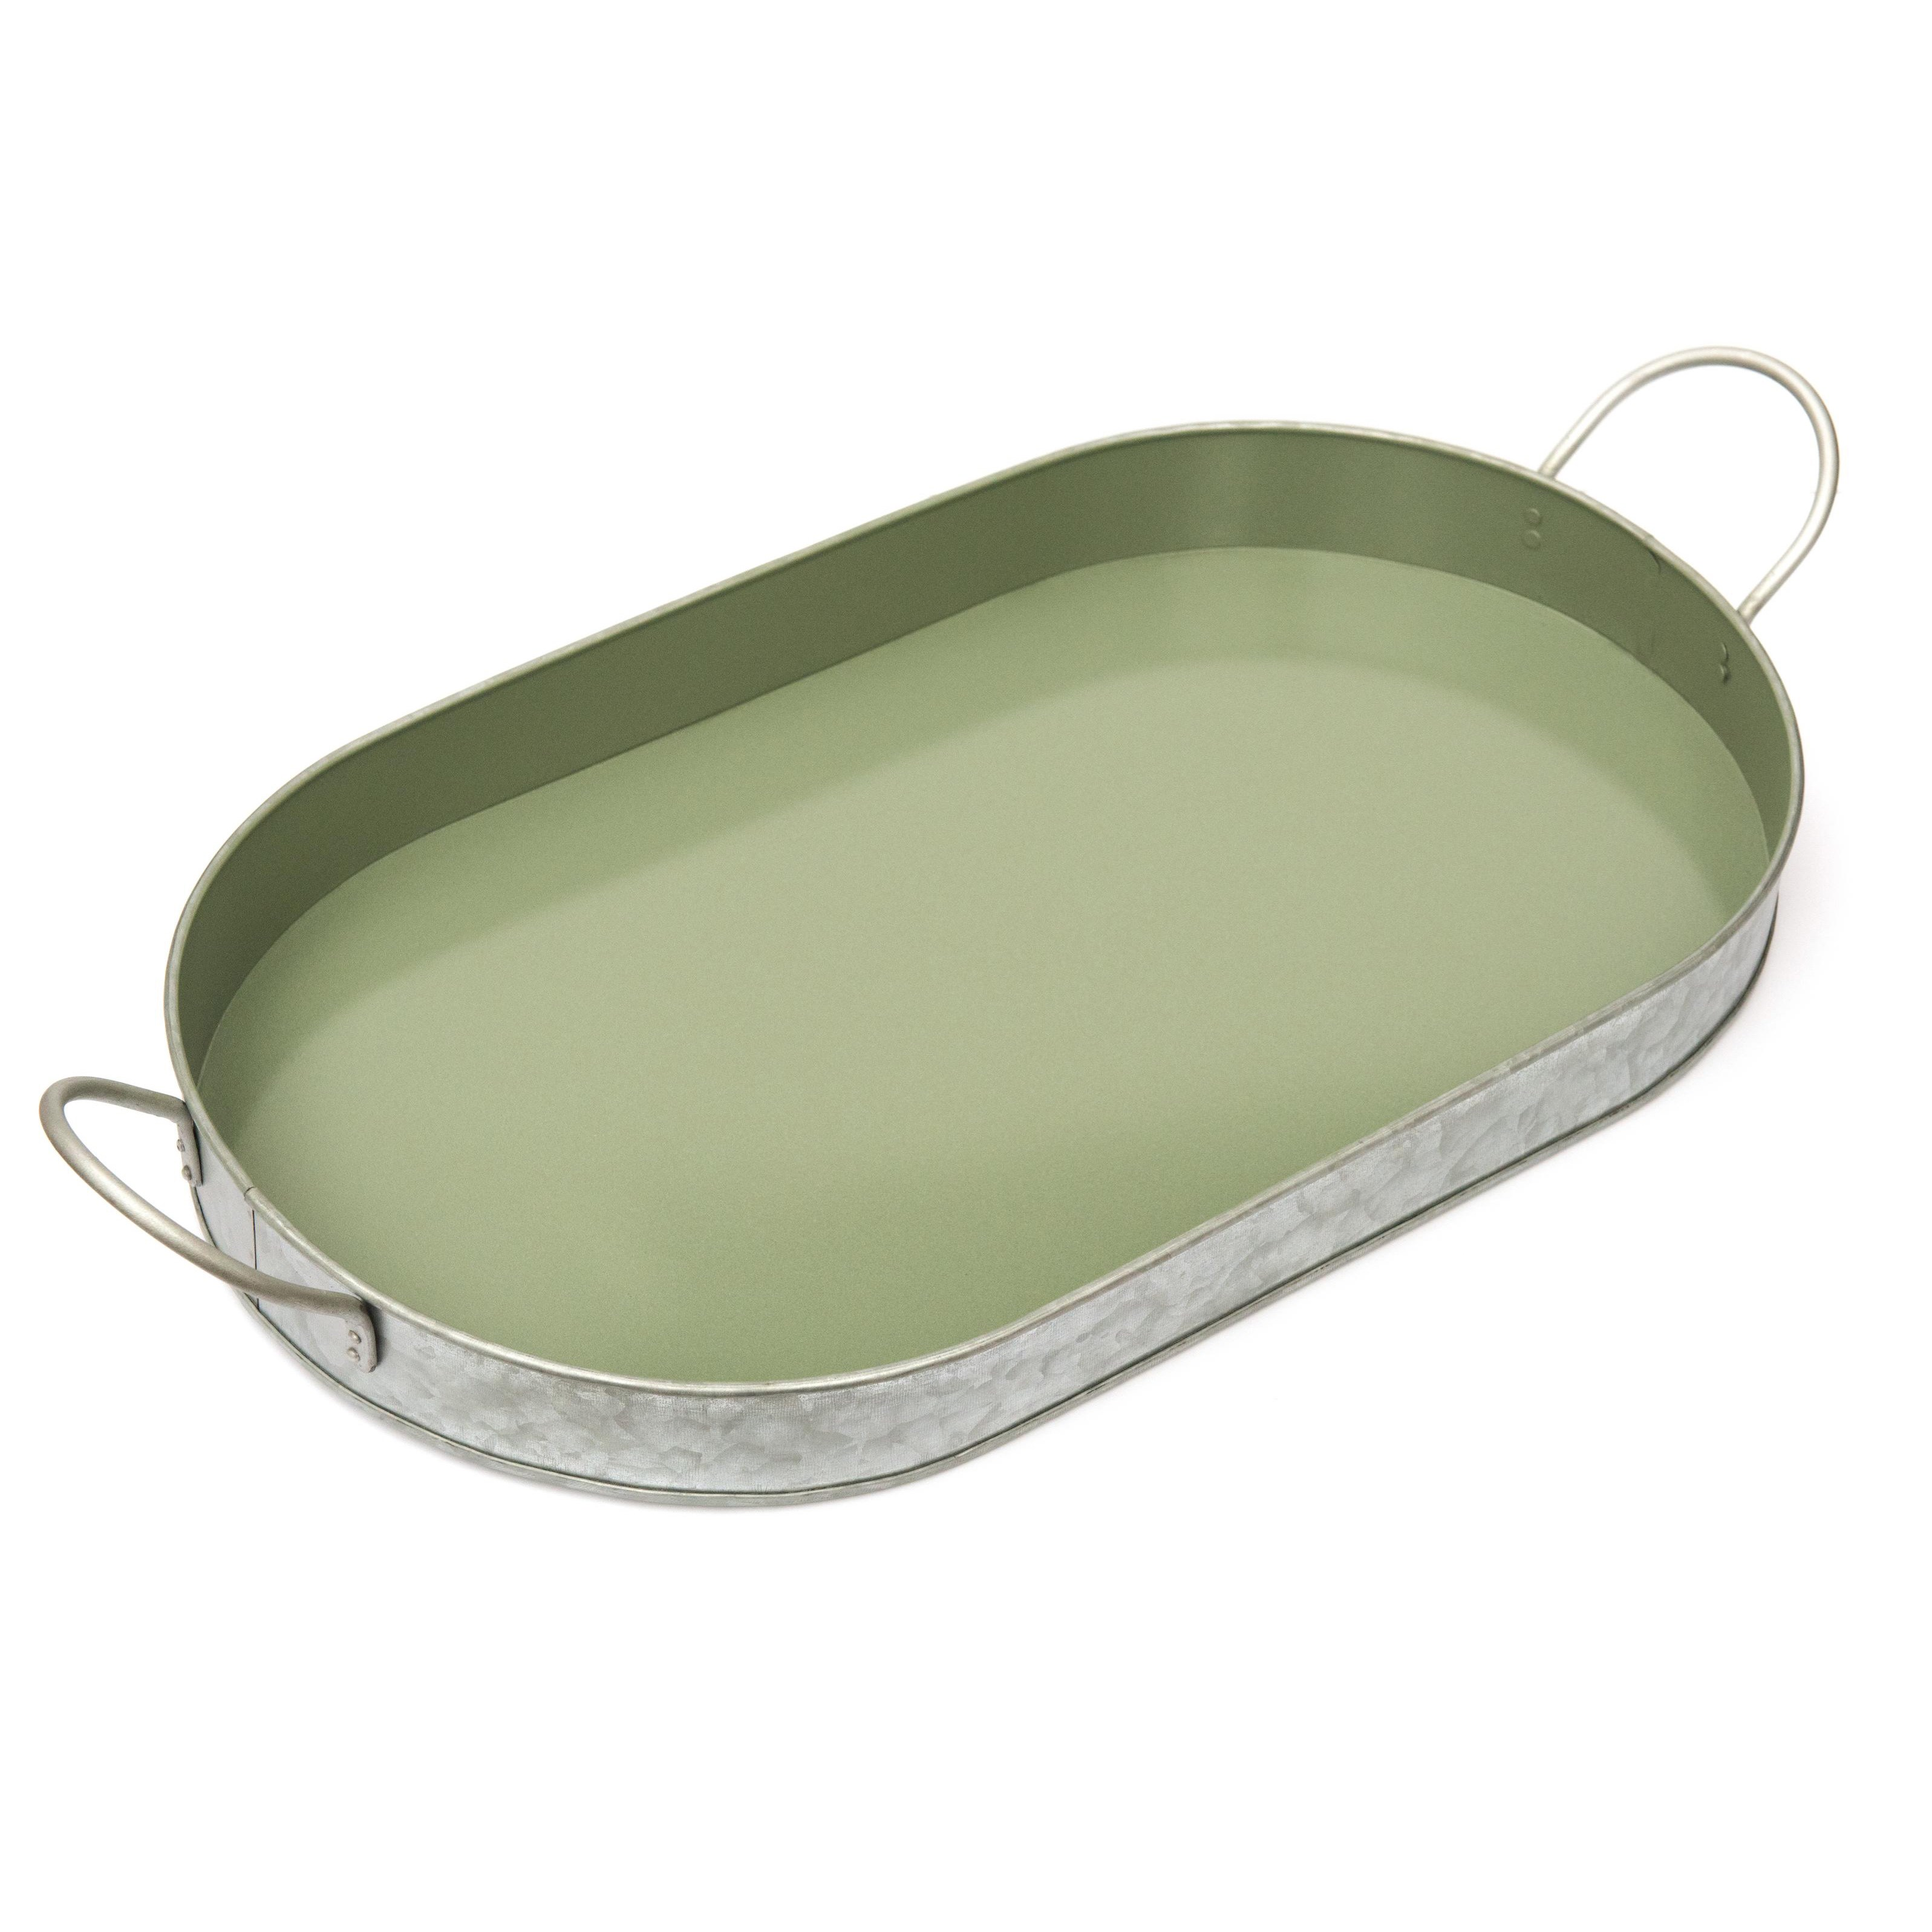 Galvanised oval serving tray